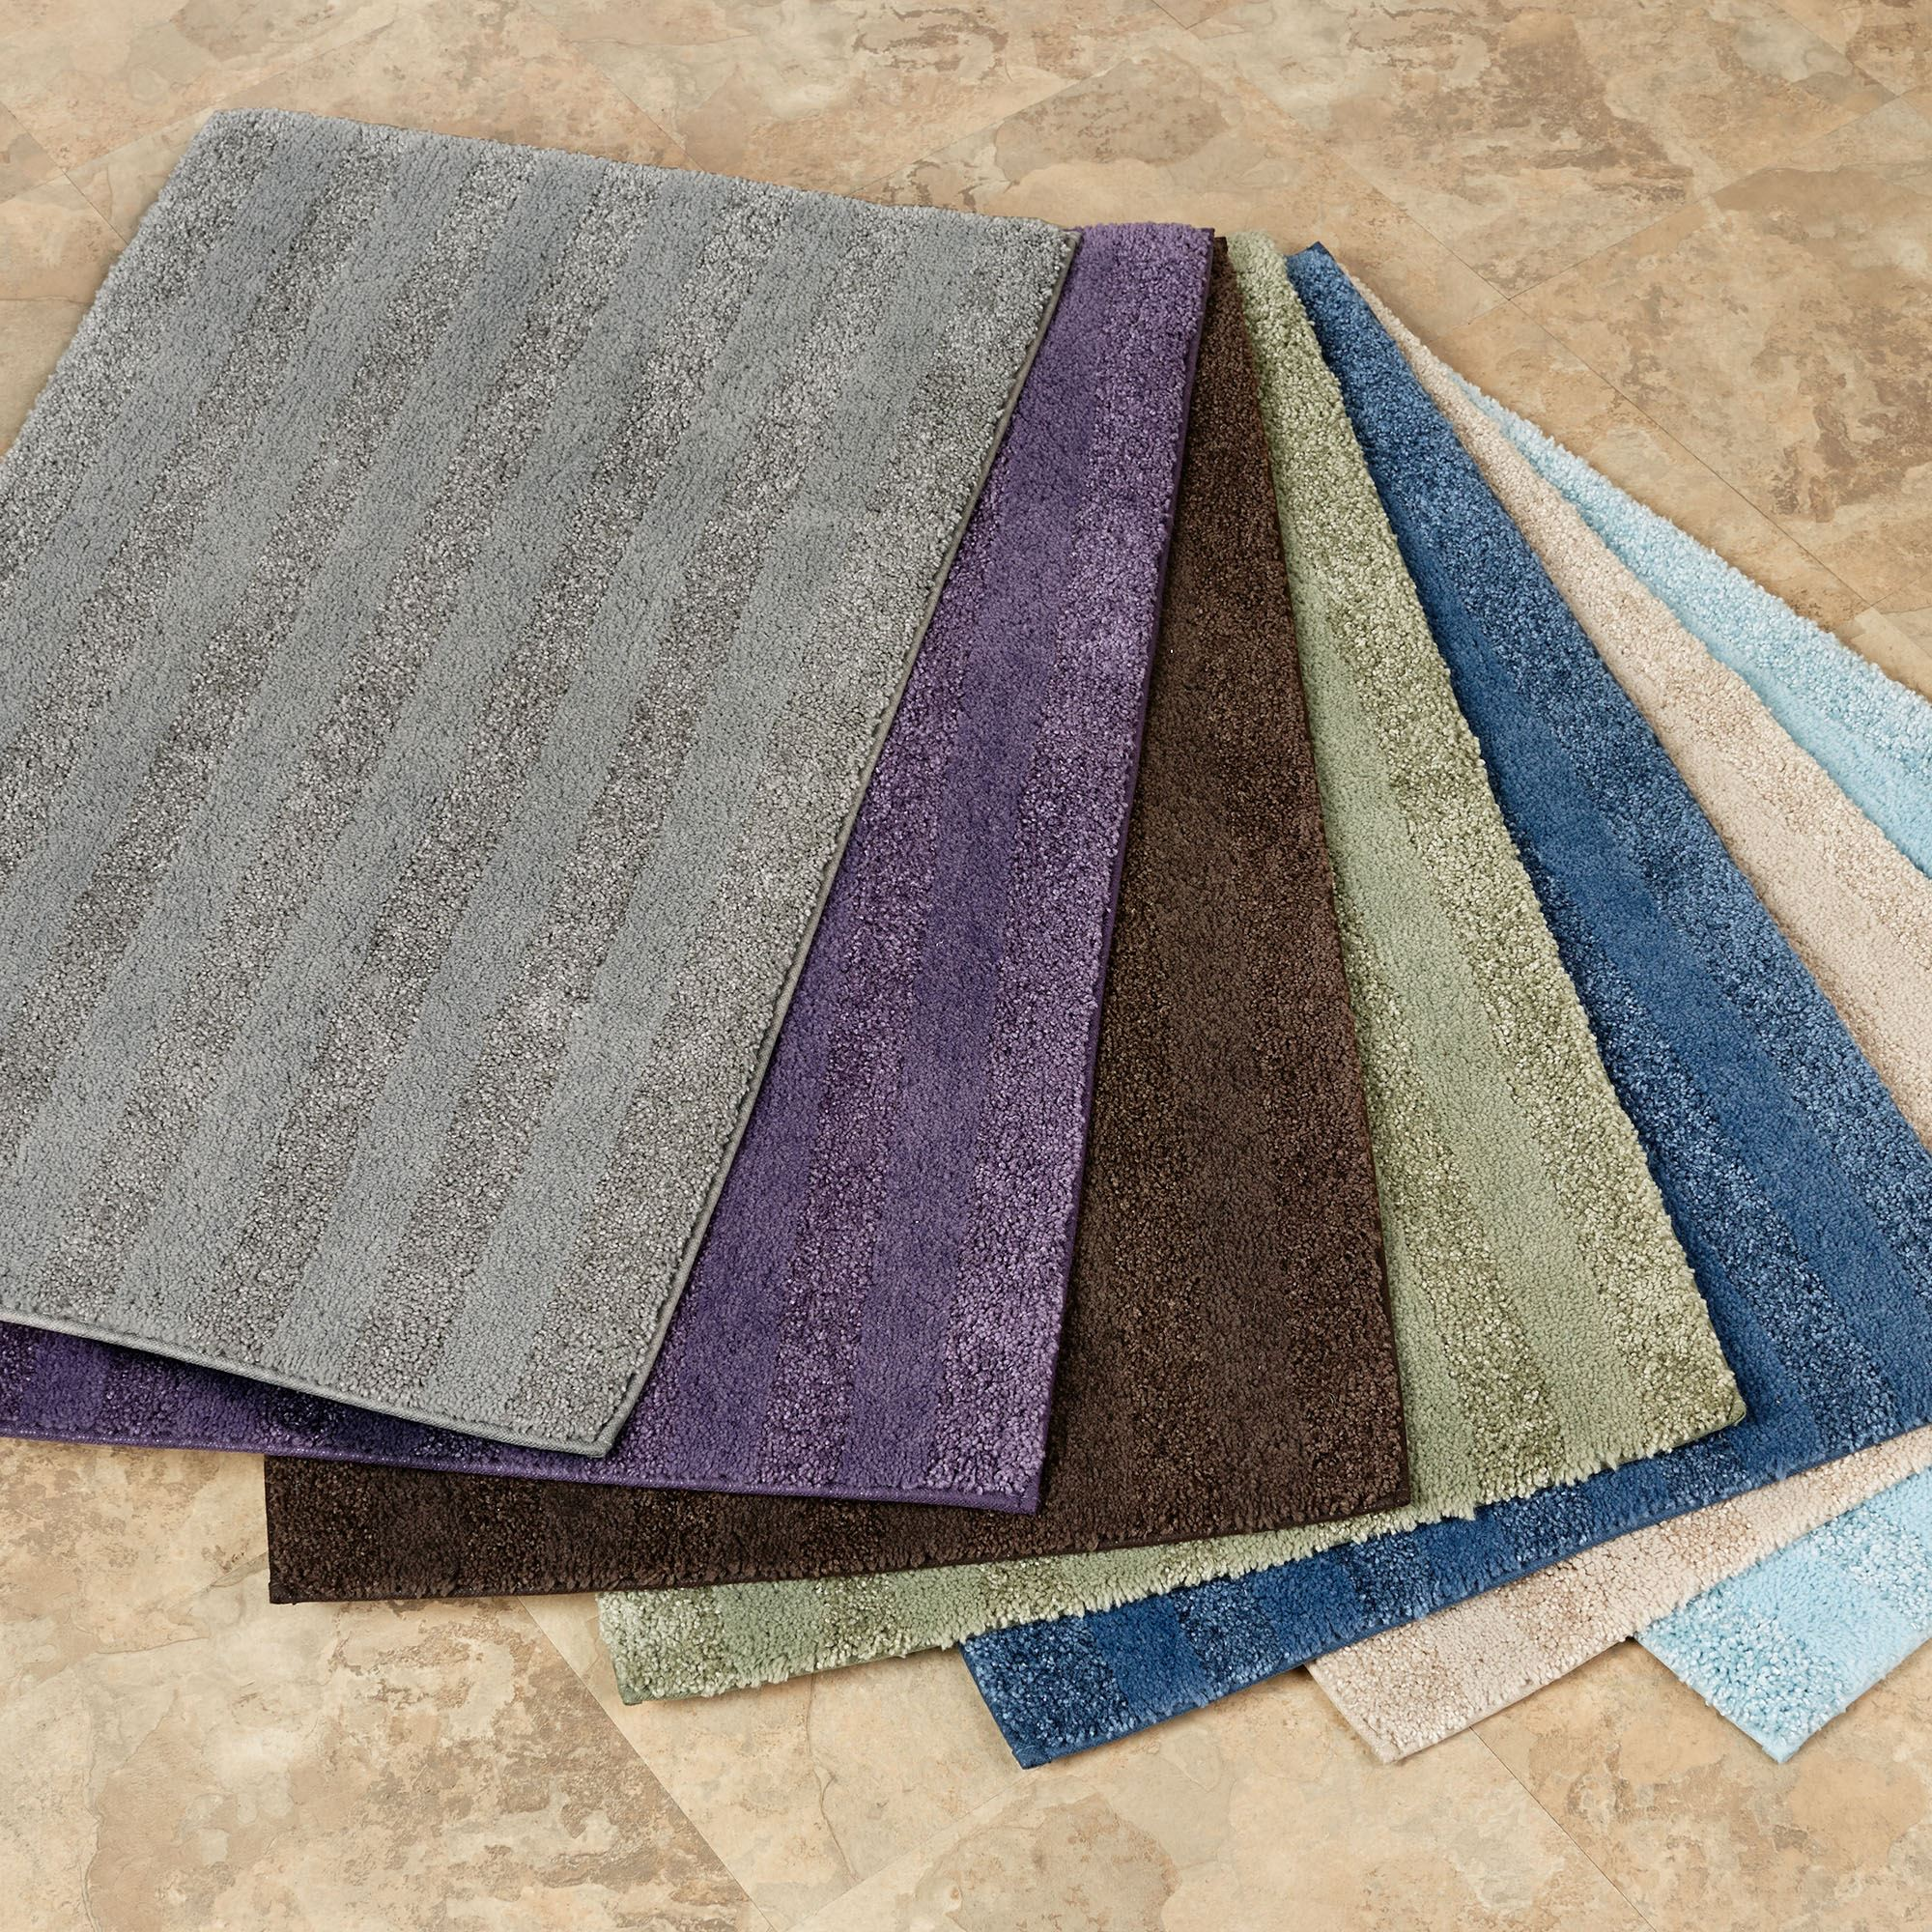 mat inch product free bath shag shipping bedding windsor home memory orders over on foam x overstock purple mats